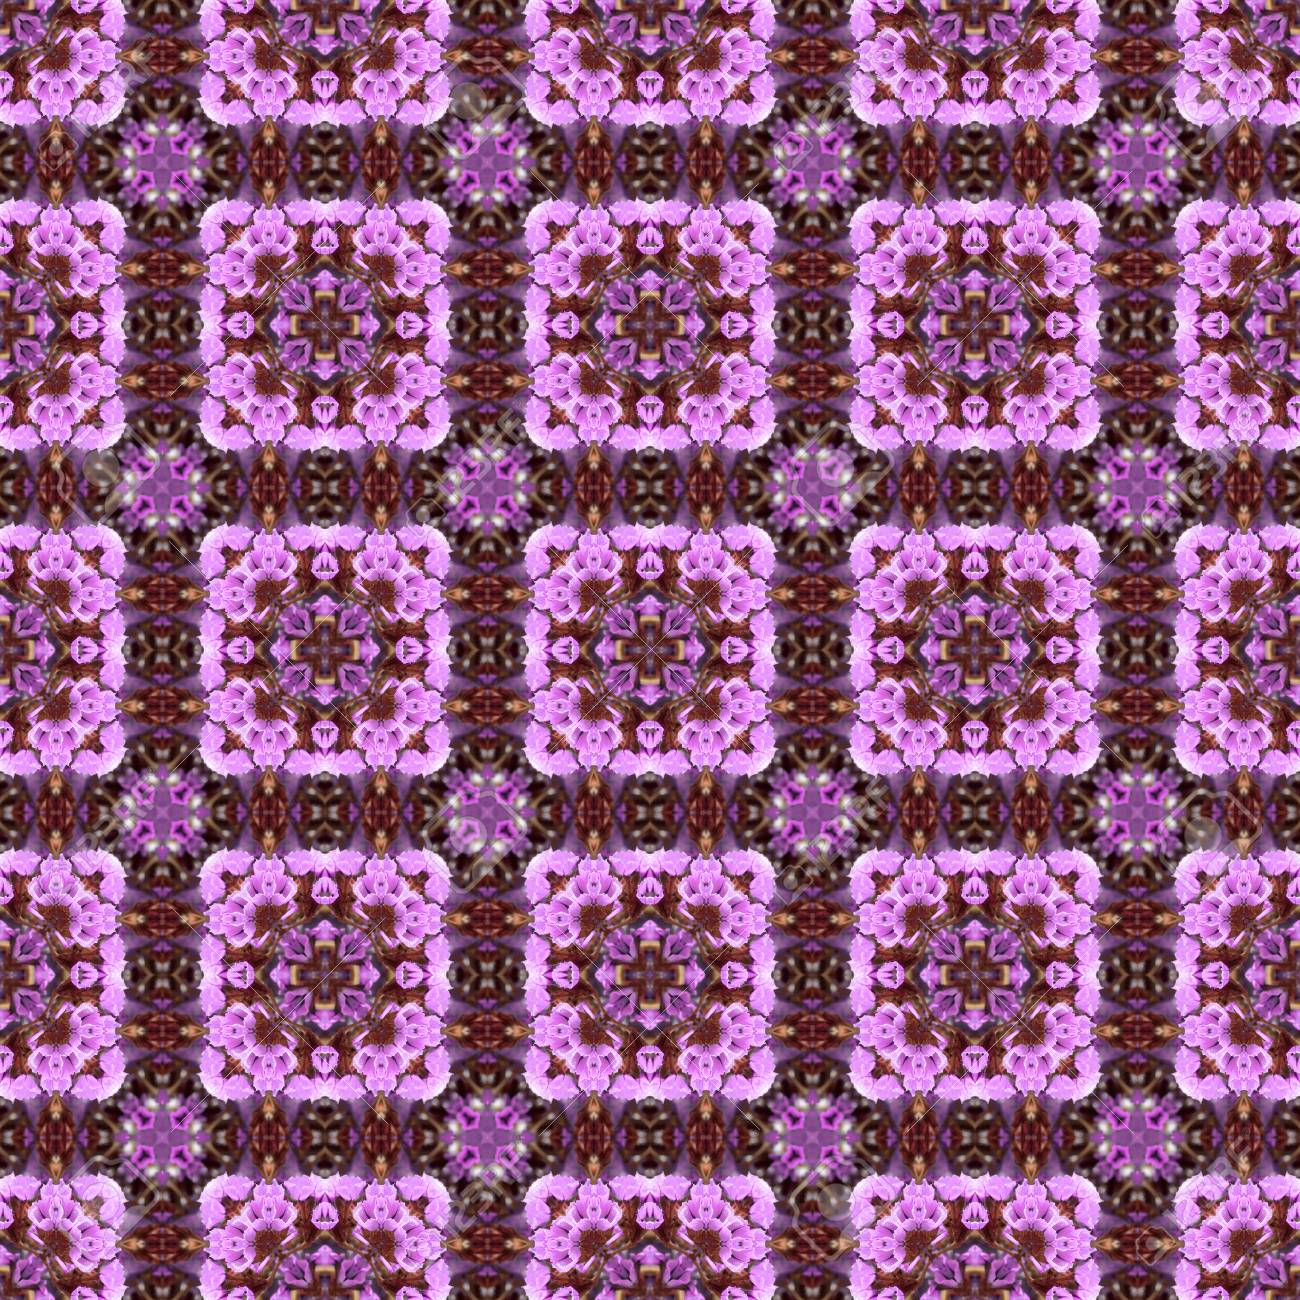 Abstract flowers seamless pattern background. Kaleidoscope from flowers. Hydraulic tile design. - 104074711